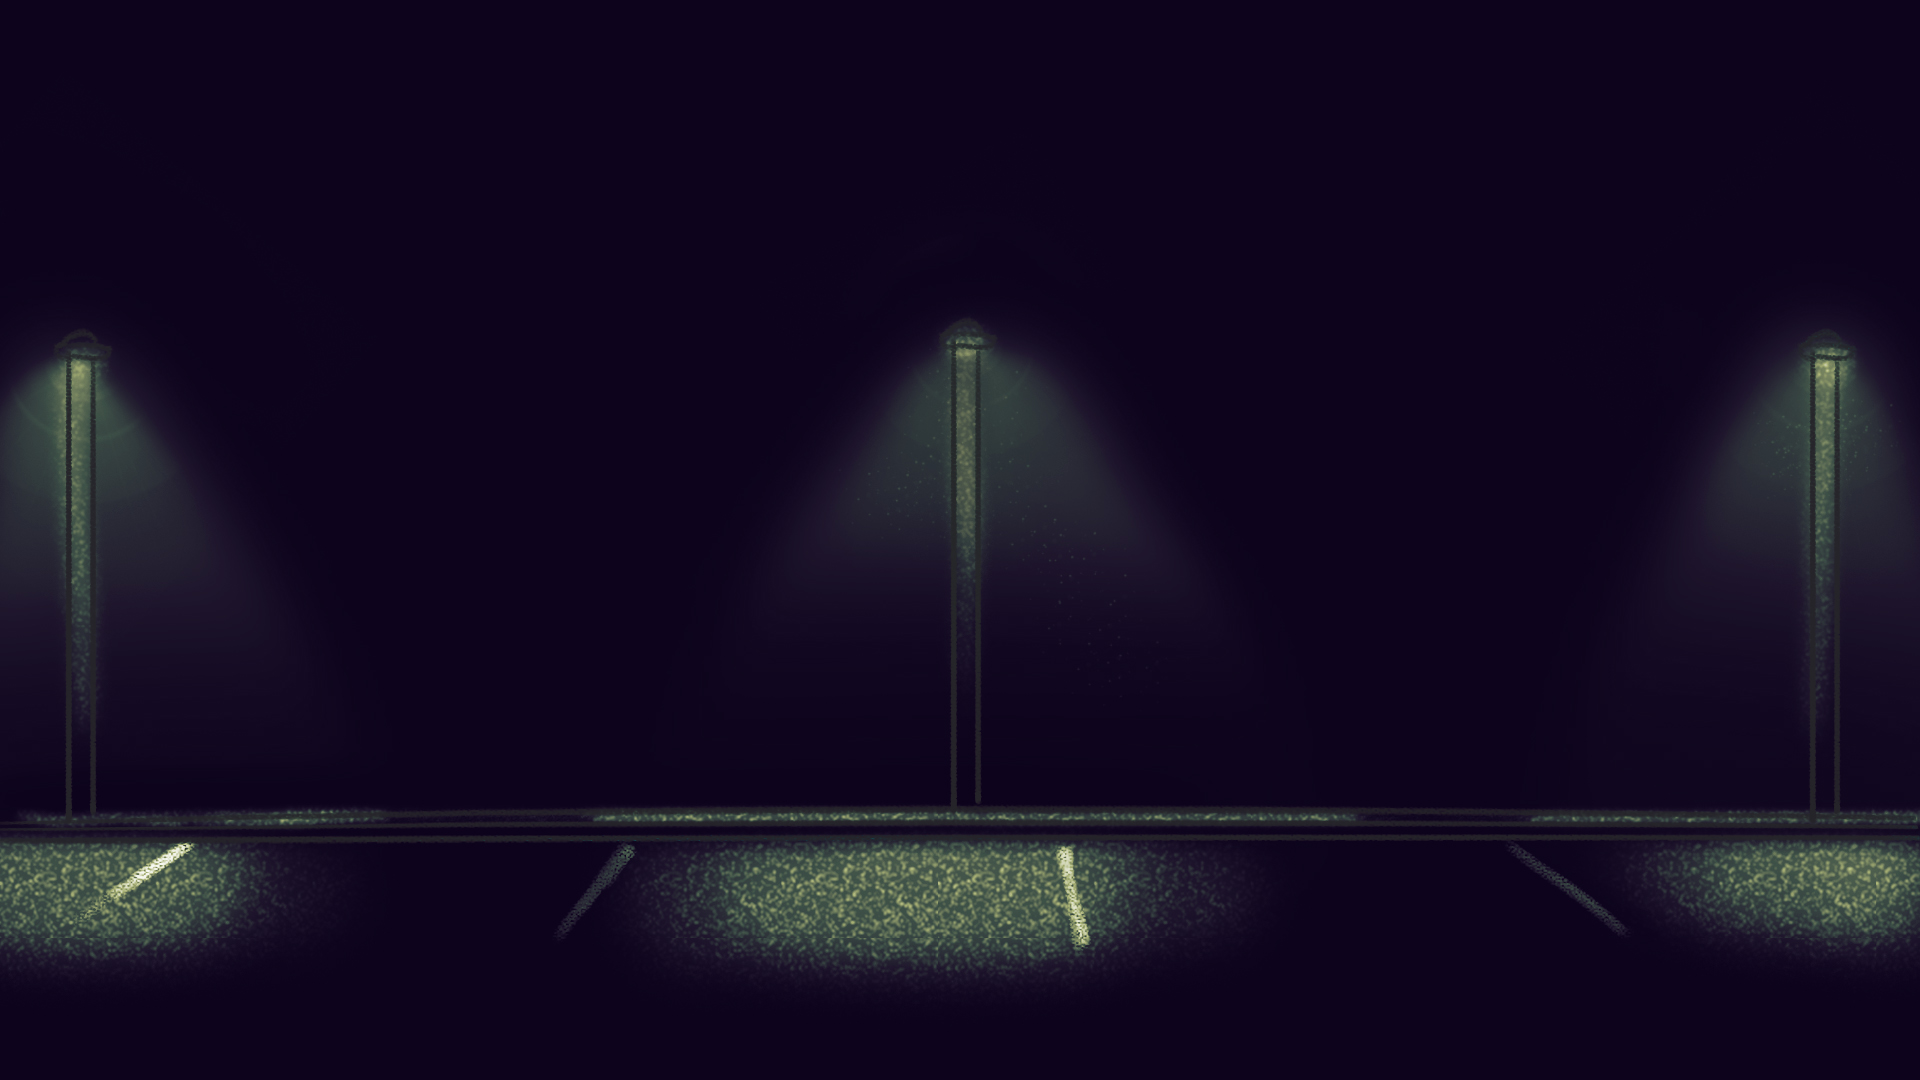 Streetlight background